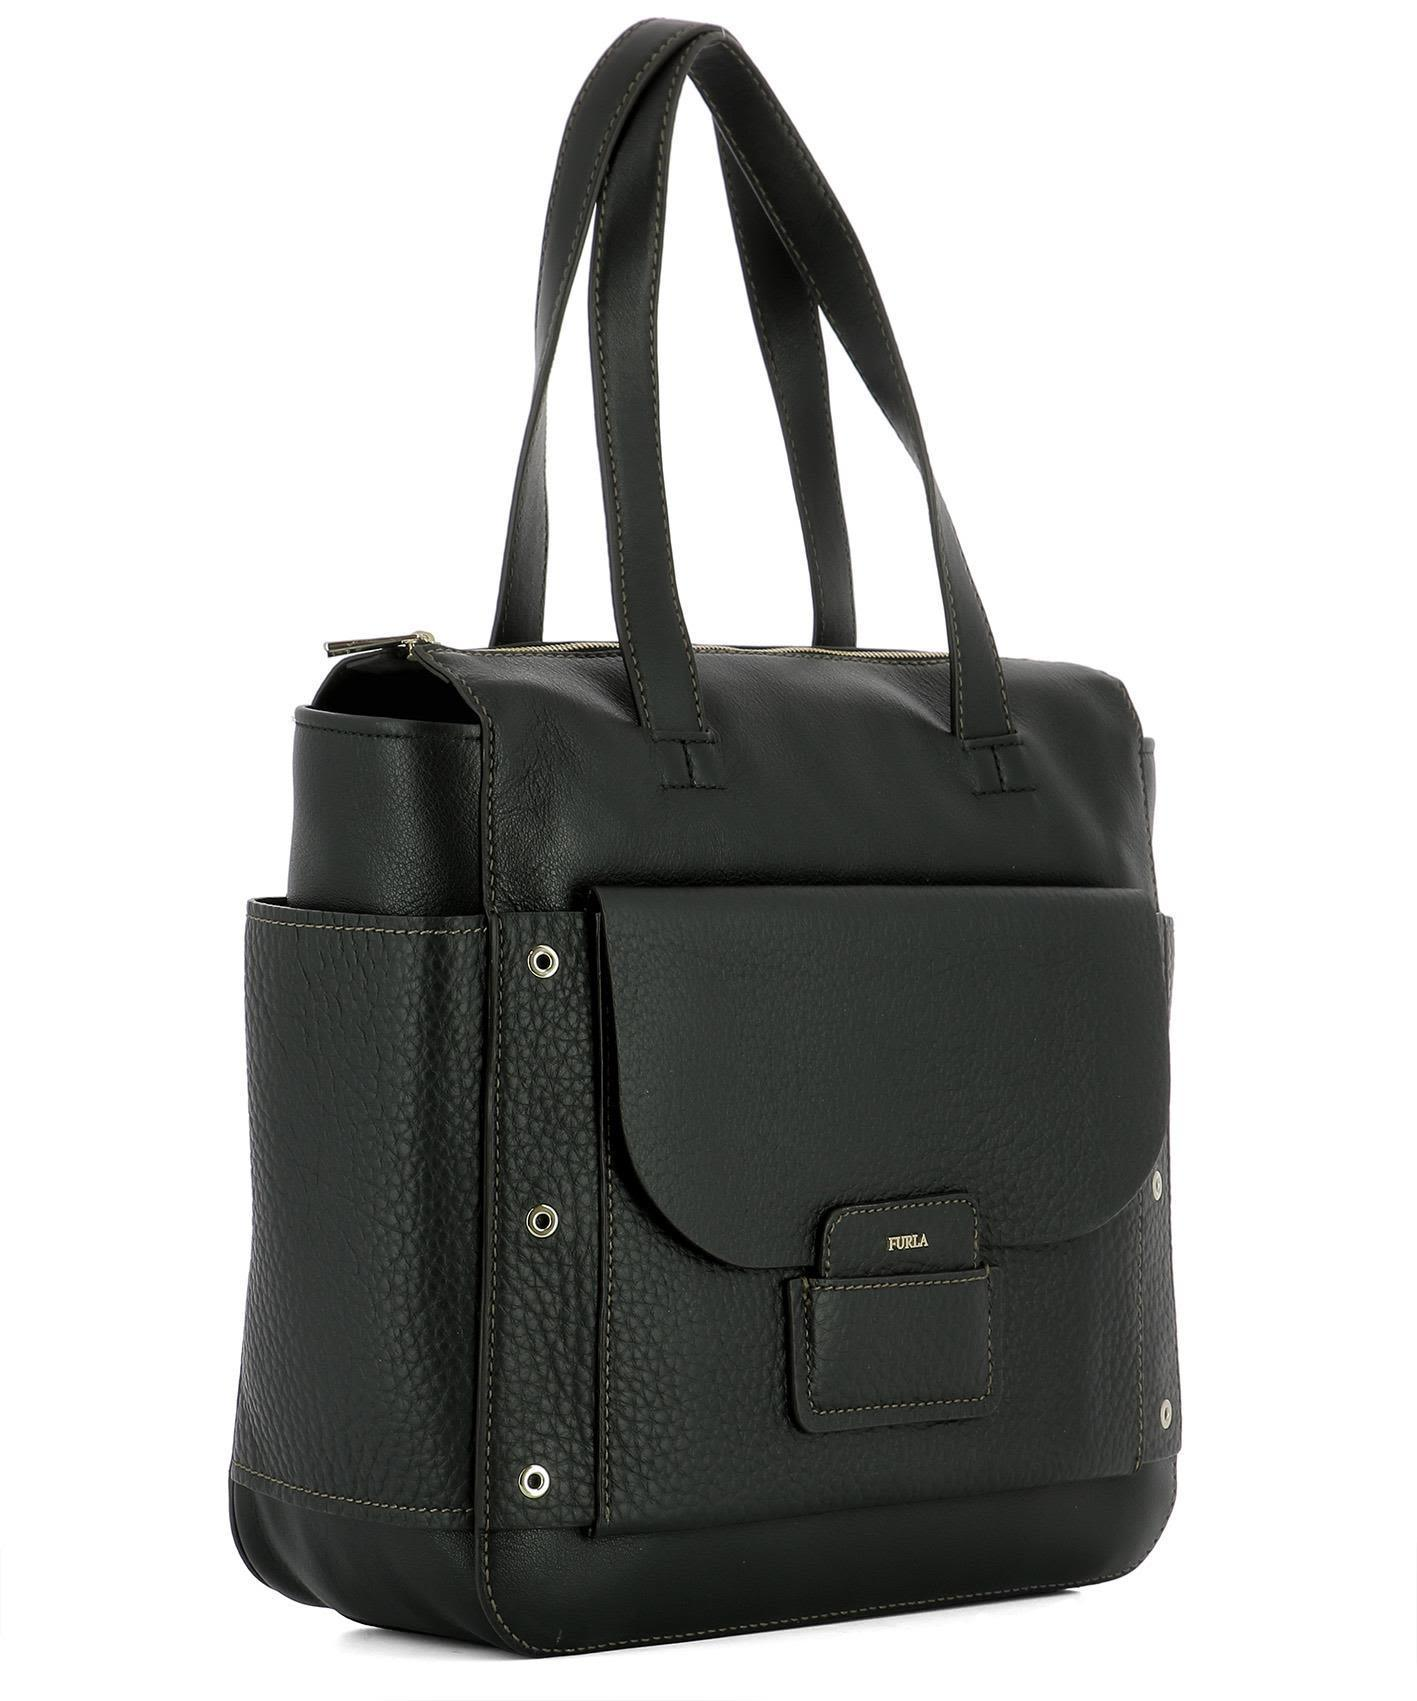 送料込 Black Leather Shoulder Bag バッグ